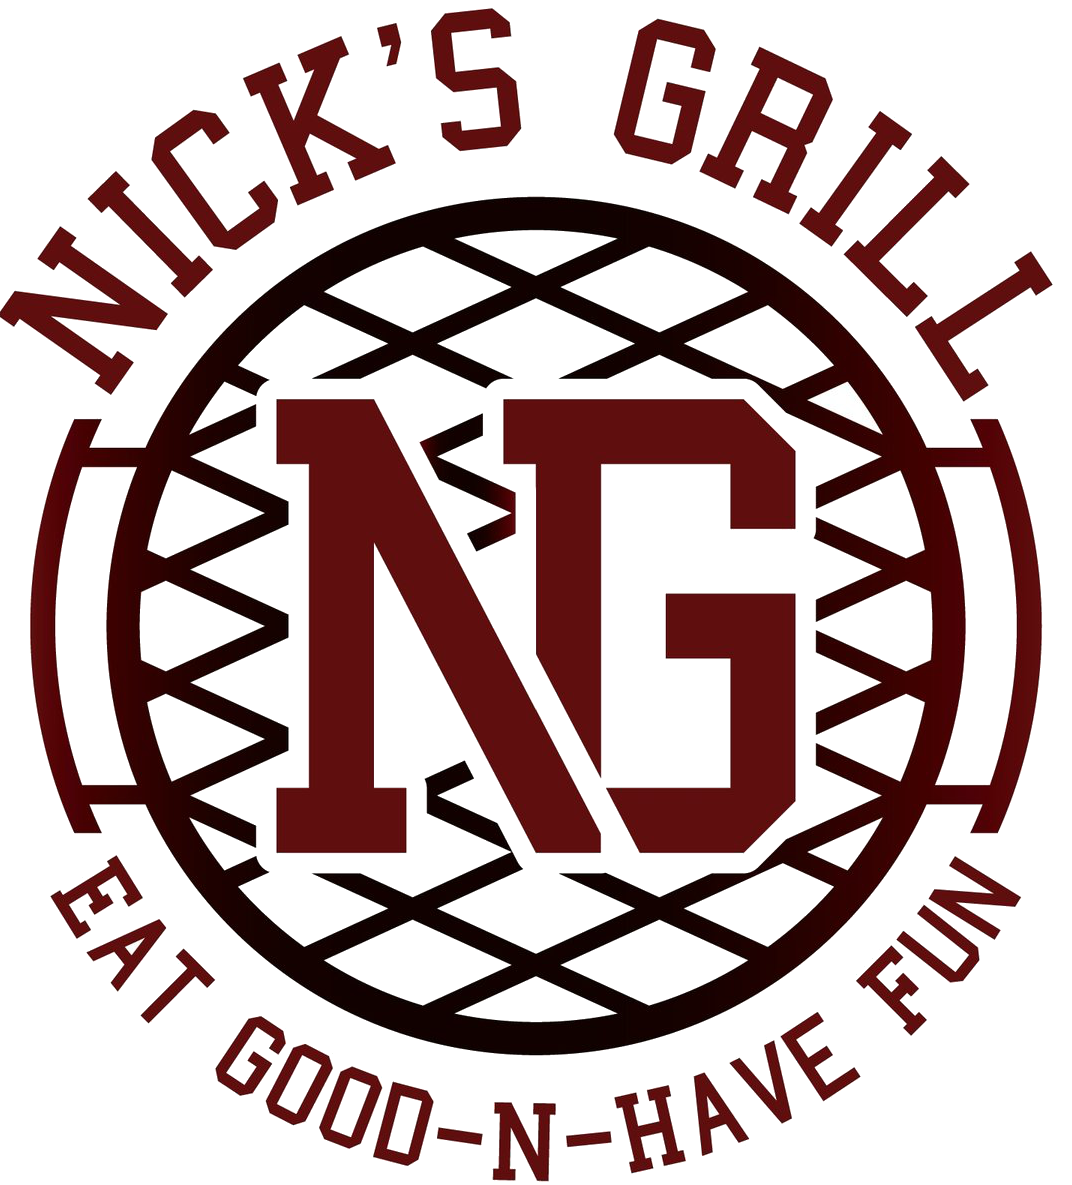 Nick's Grill